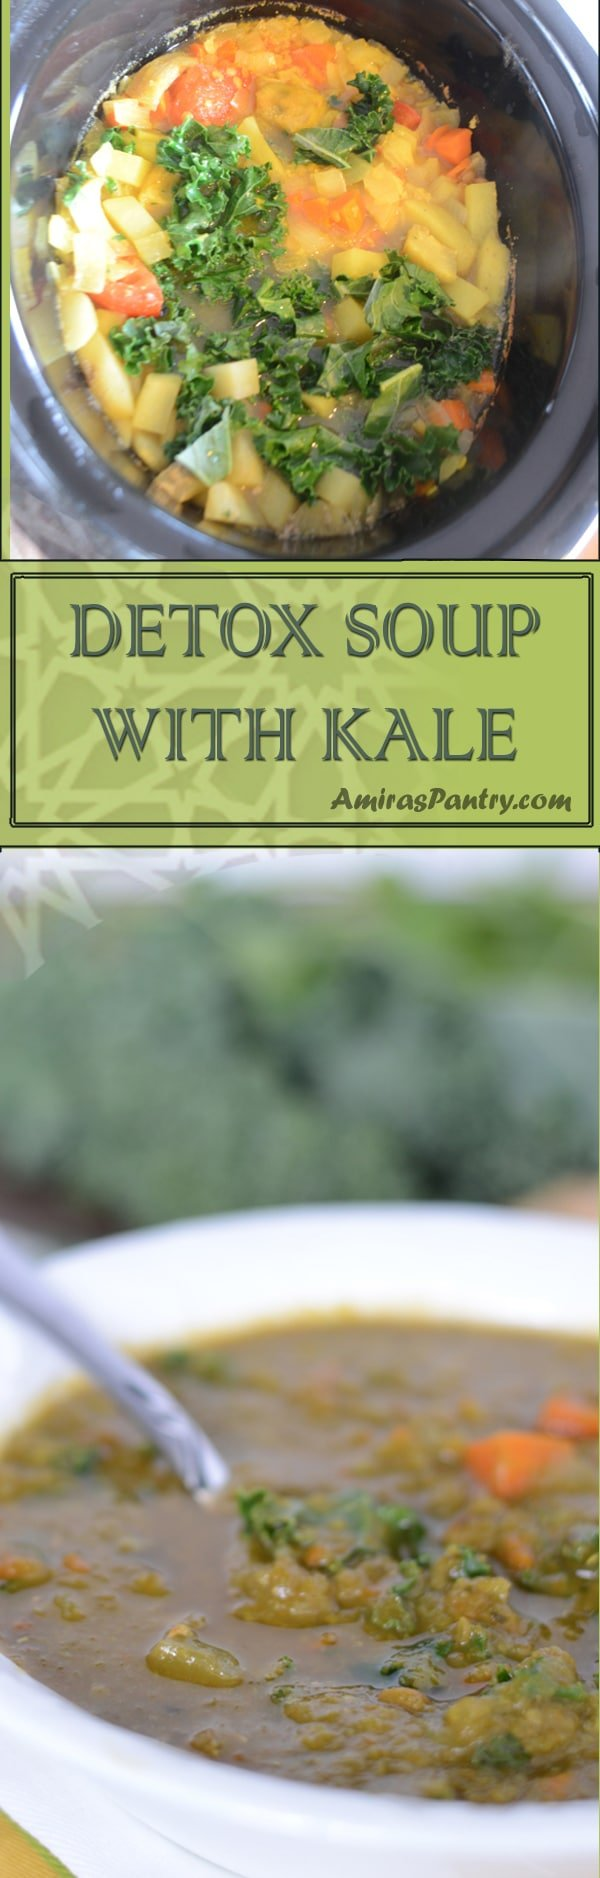 An infograph for Kale soup recipe